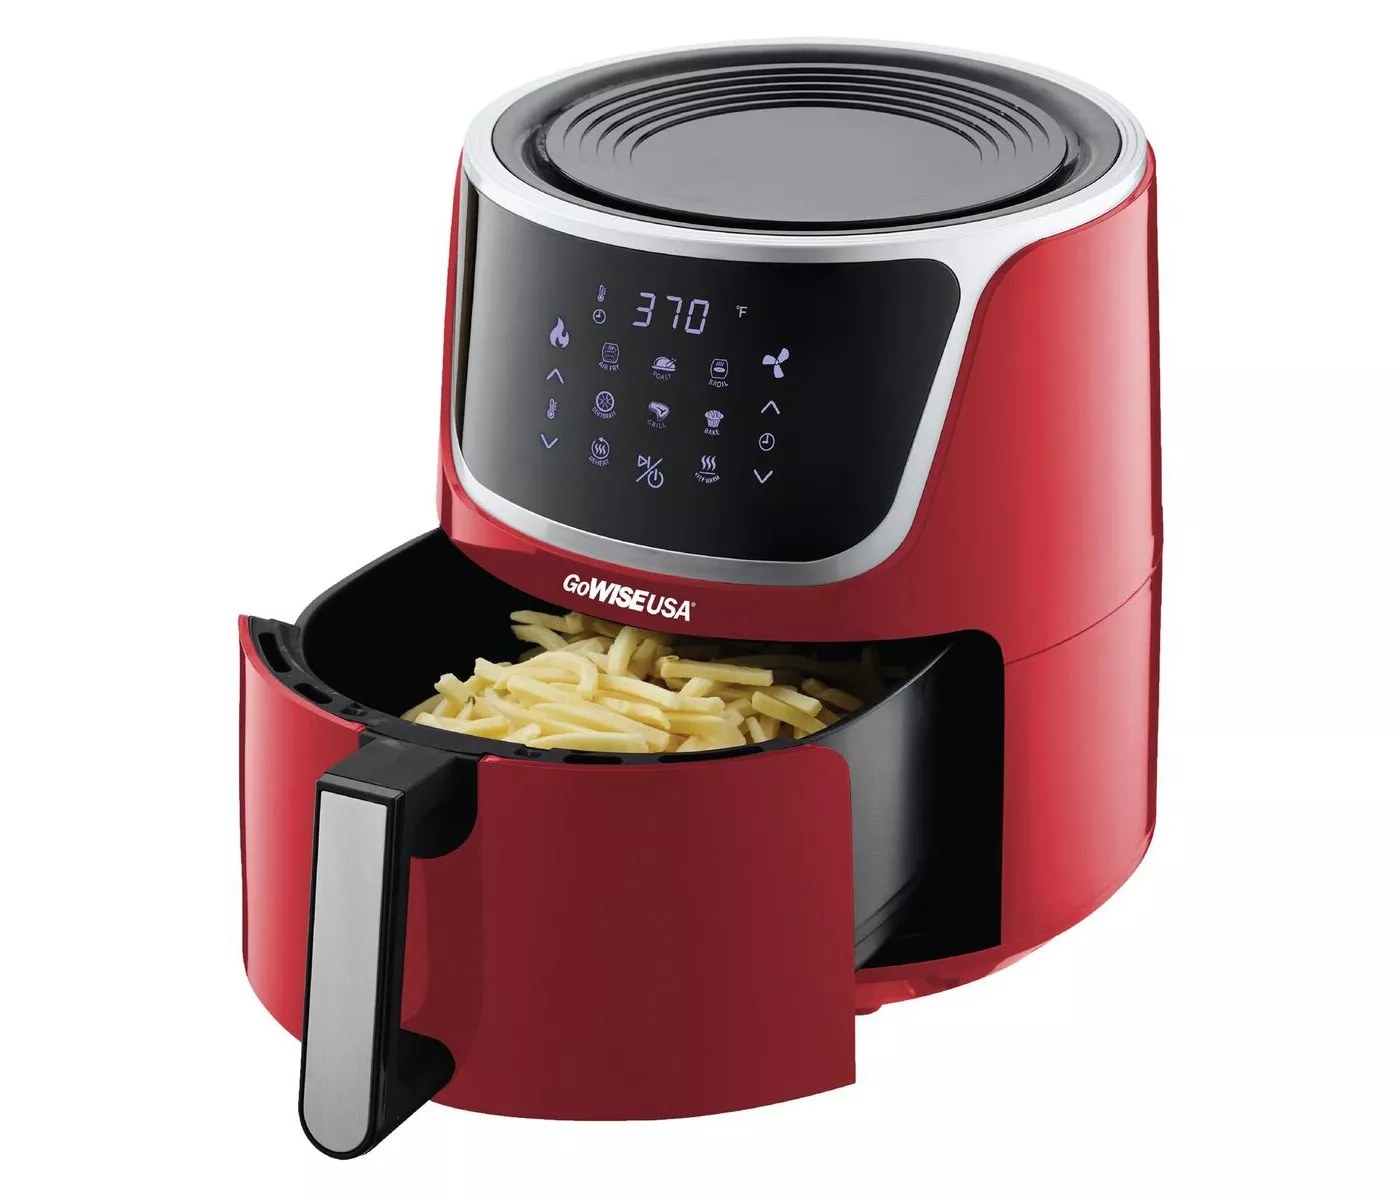 The red air fryer